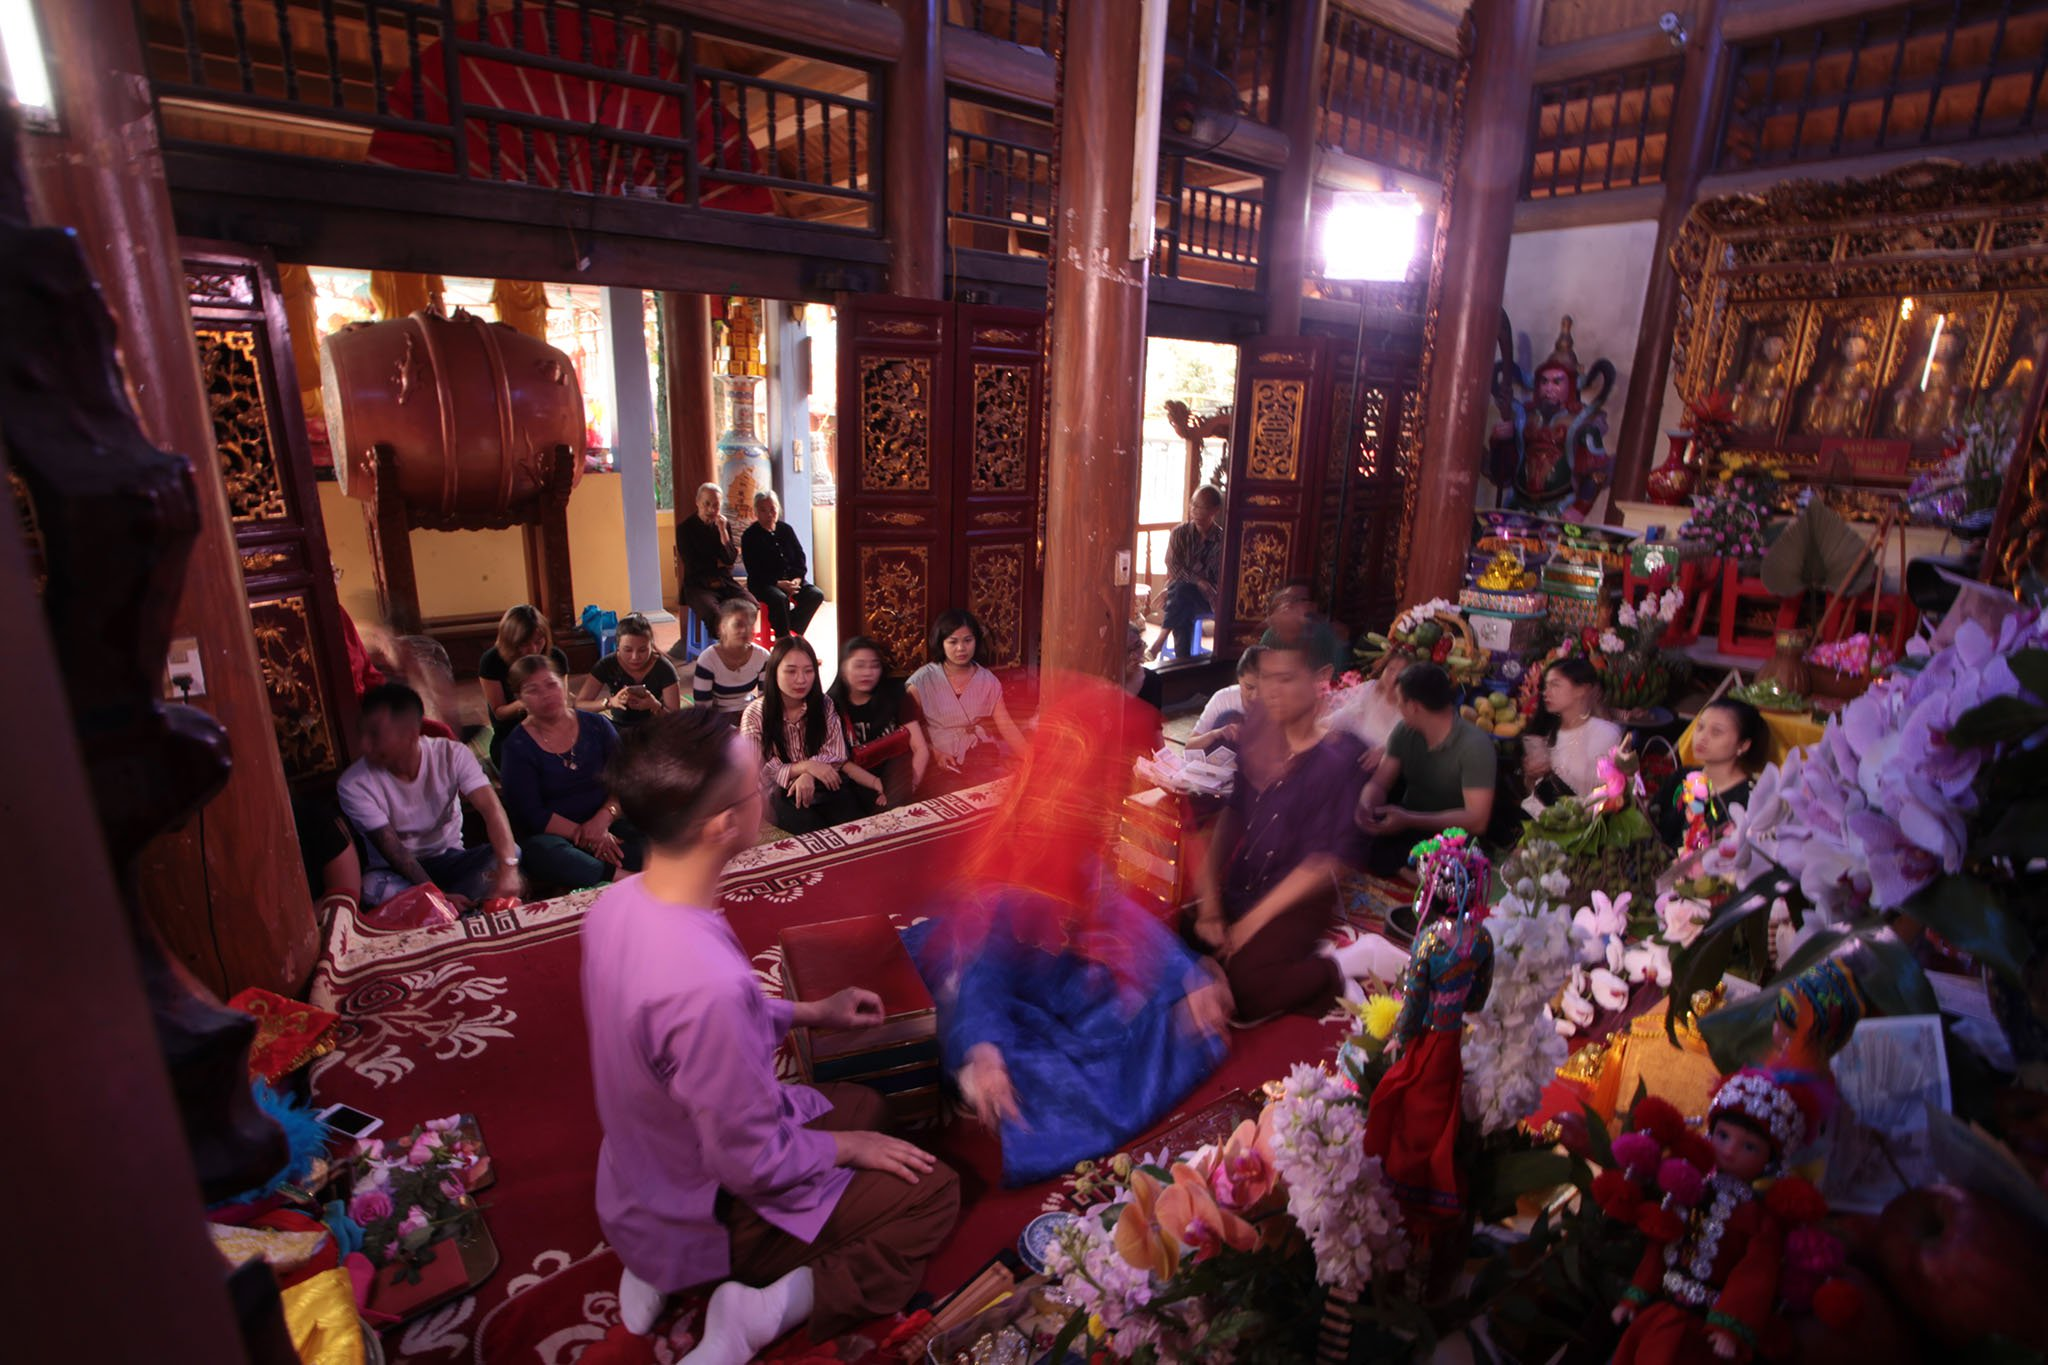 Loading suspected-ceremony-almost-dong-Nguyen-Phuong-1.jpg ...